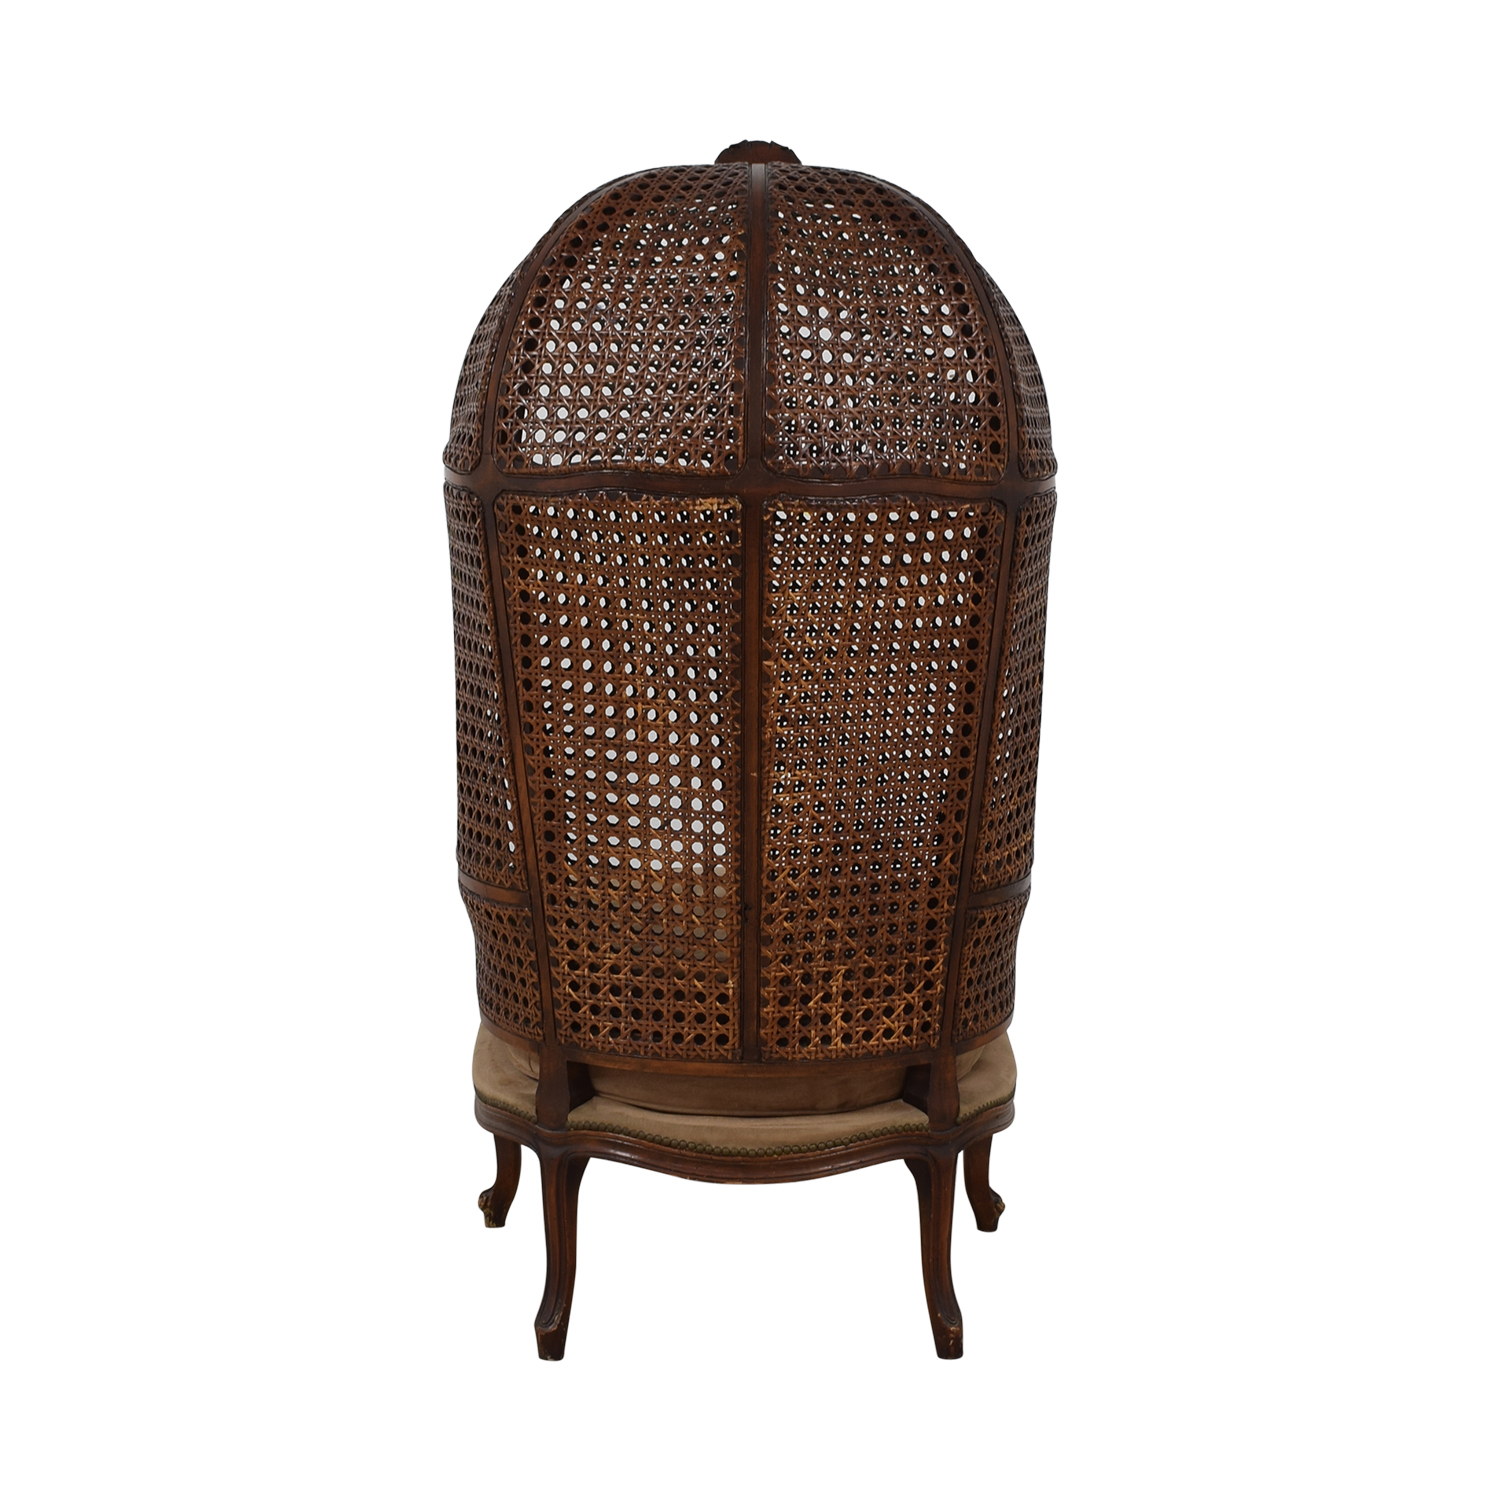 Canopy Cane Back Chair on sale